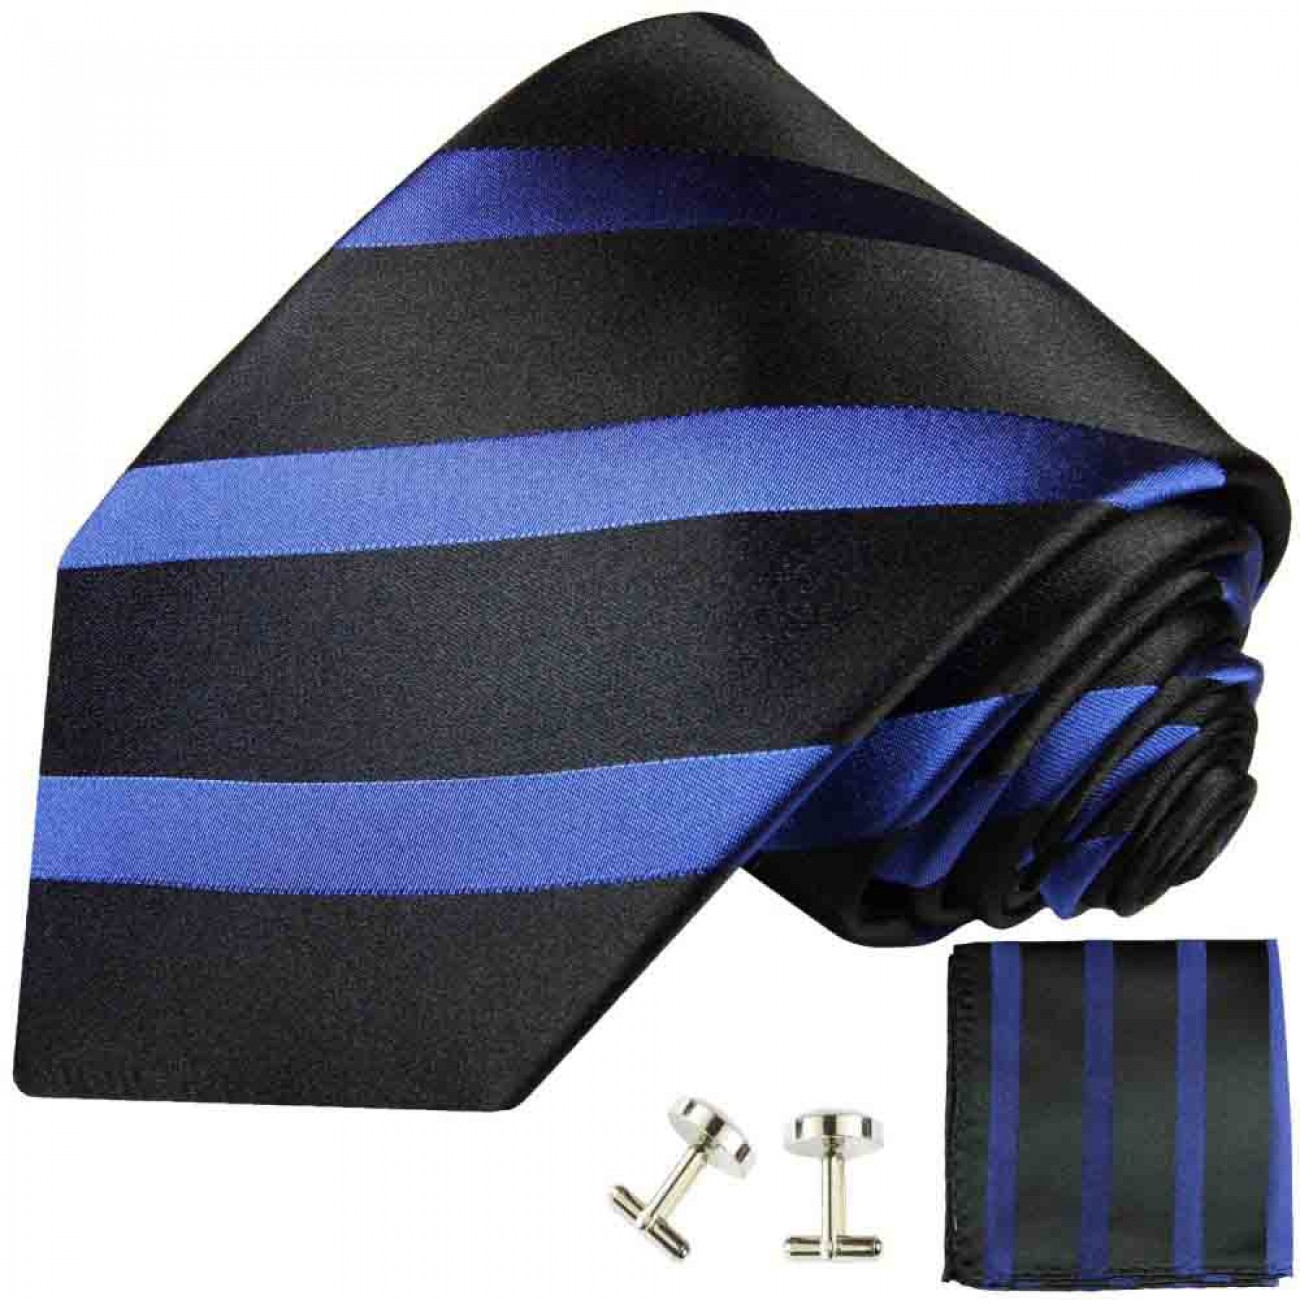 Blue black mens tie striped necktie - silk tie and pocket square and cufflinks